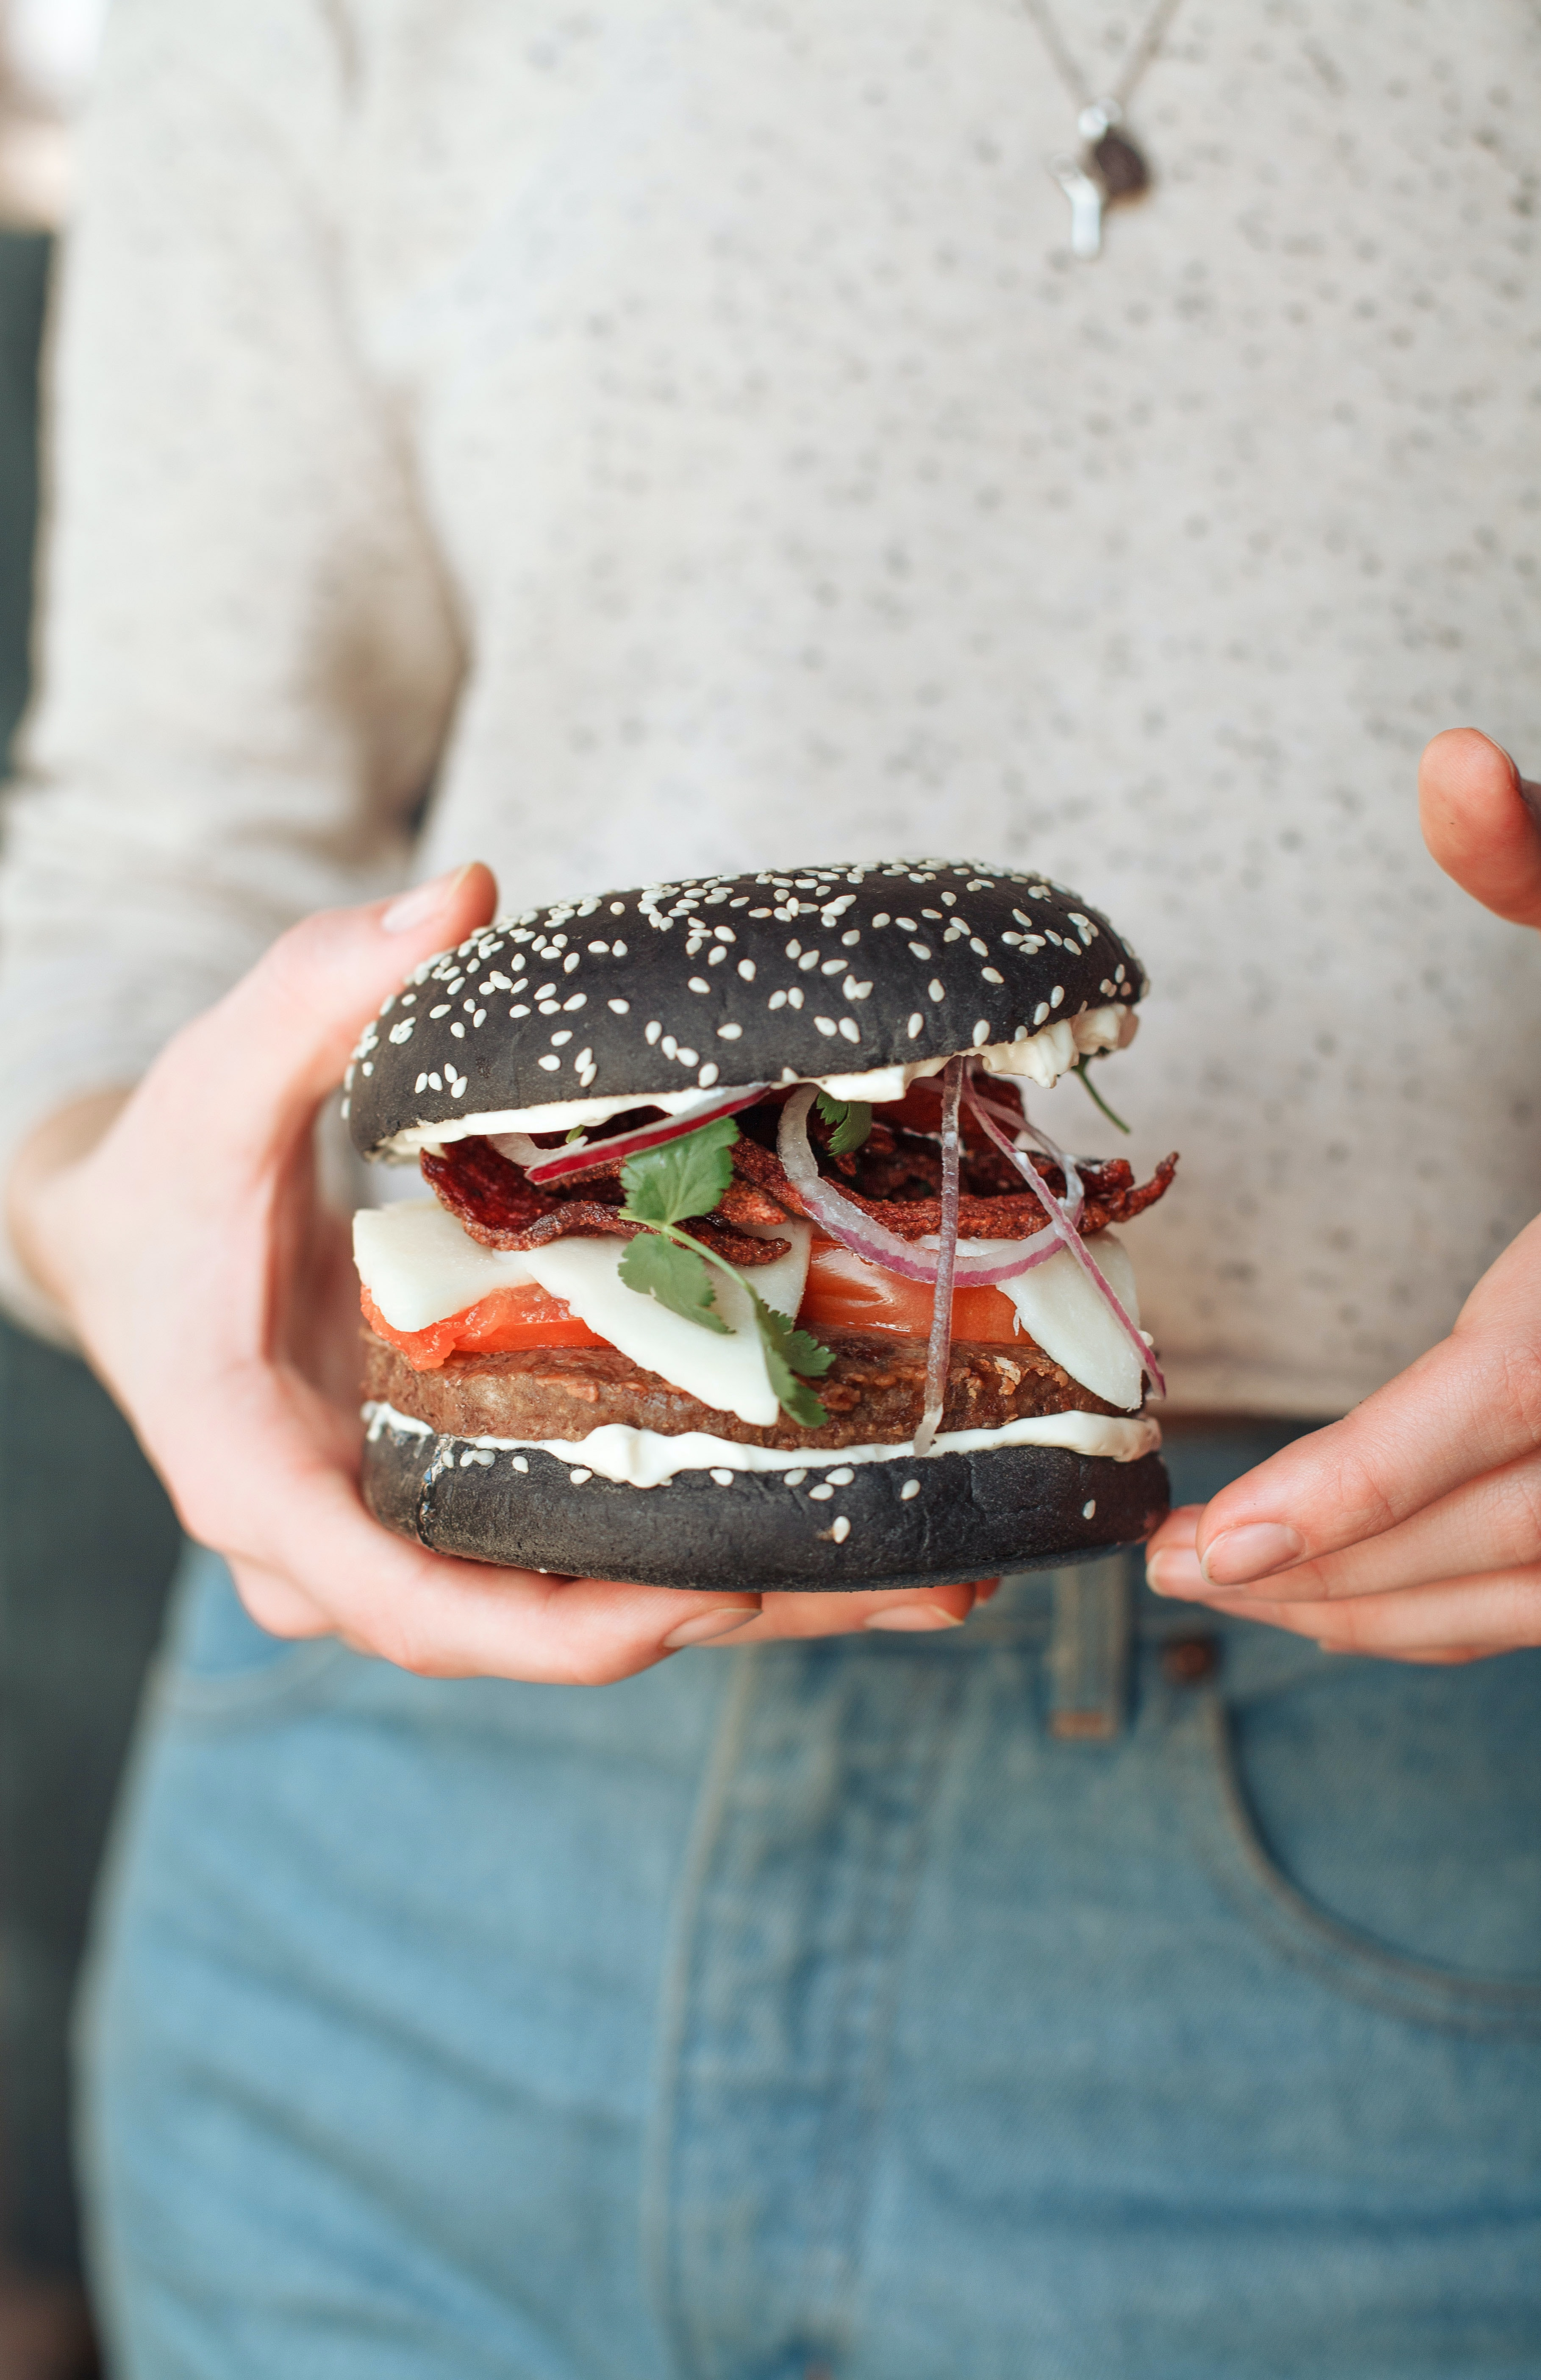 person holding burger